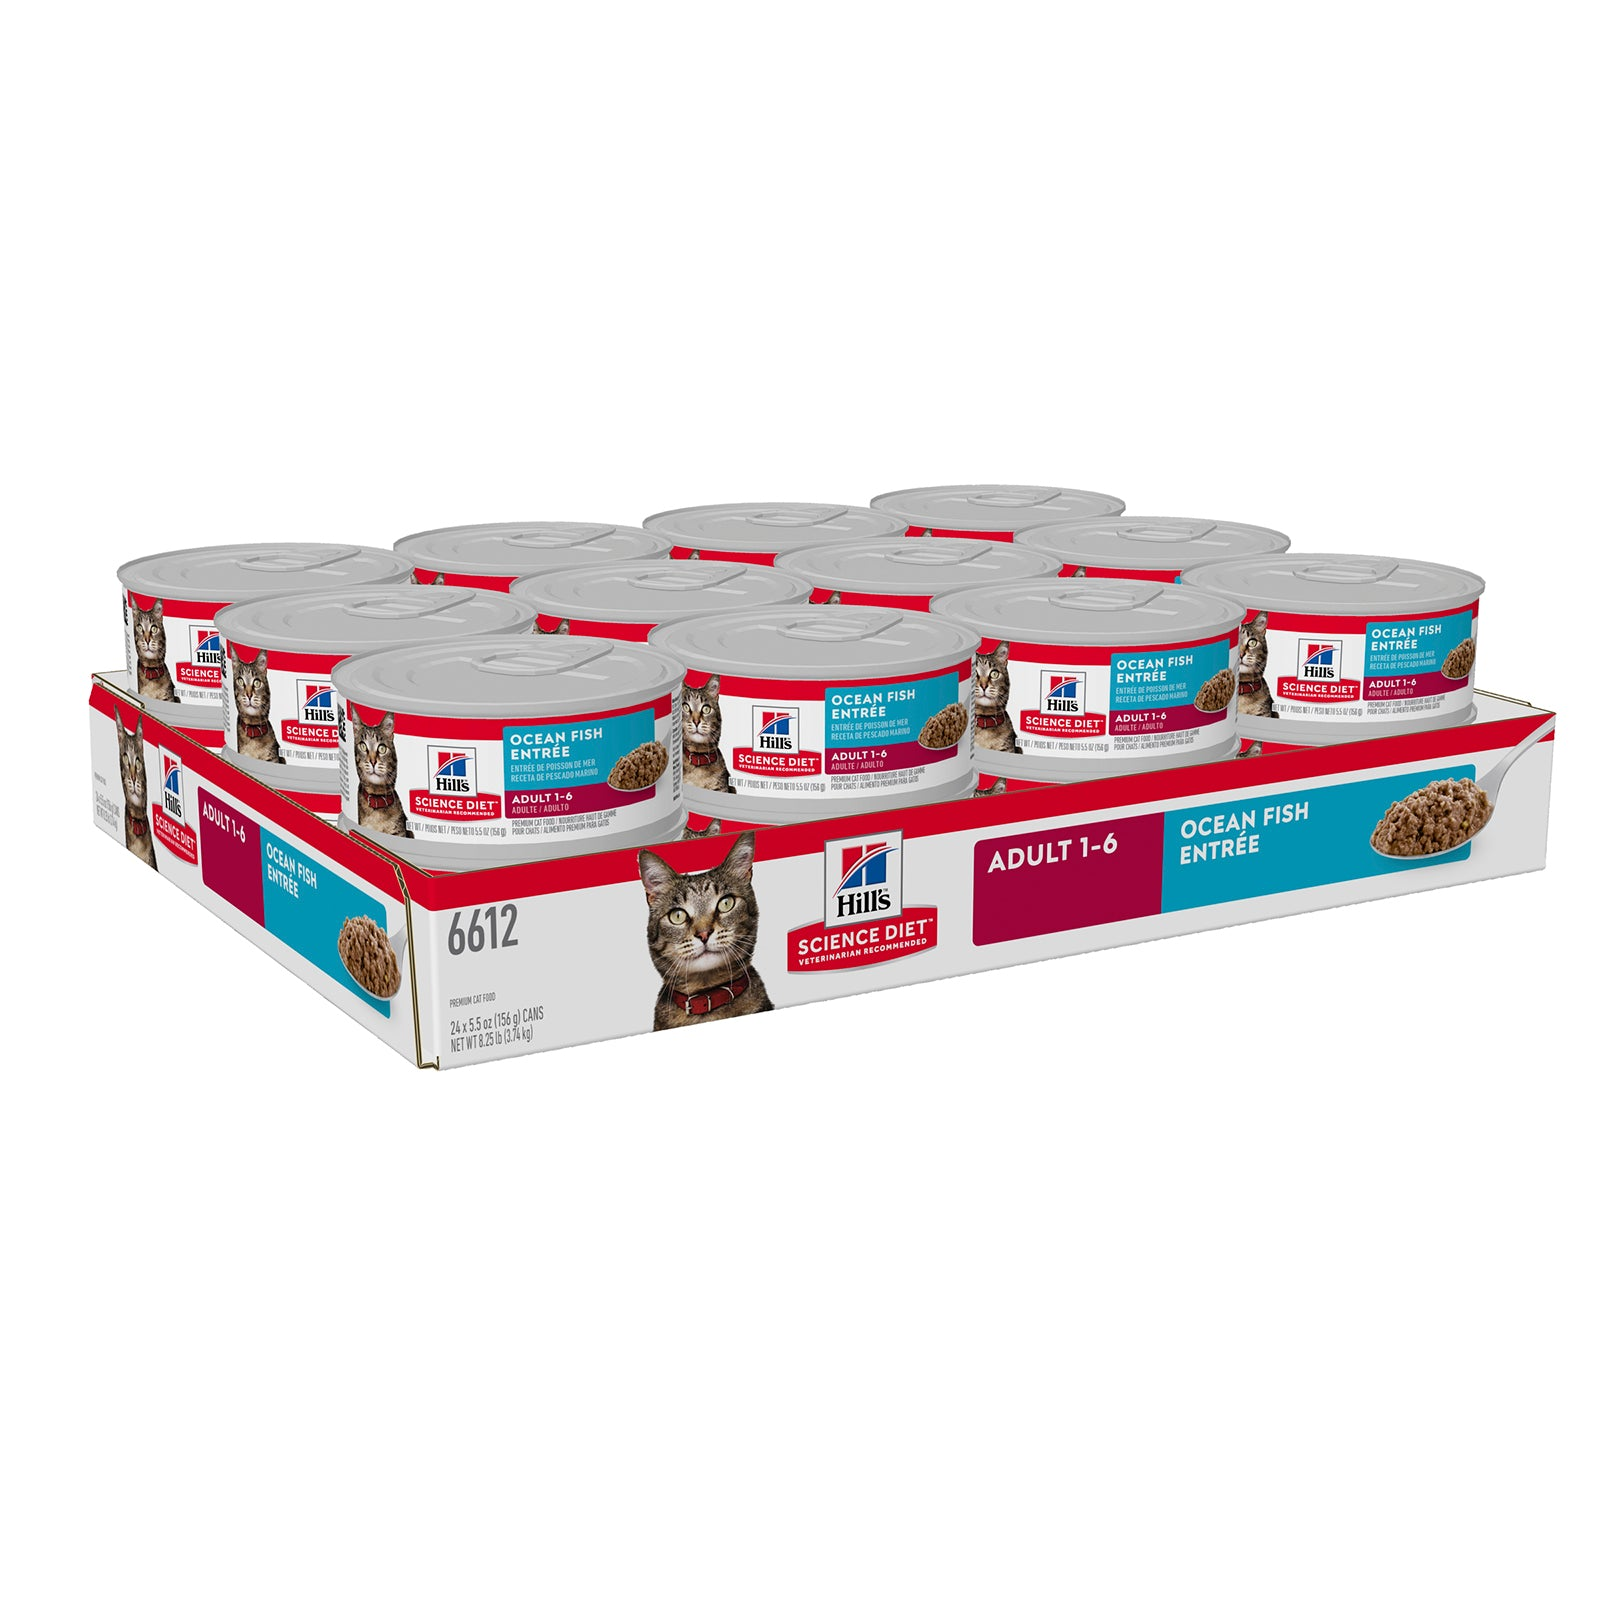 Hills Cat Food Can Adult Ocean Fish Entree